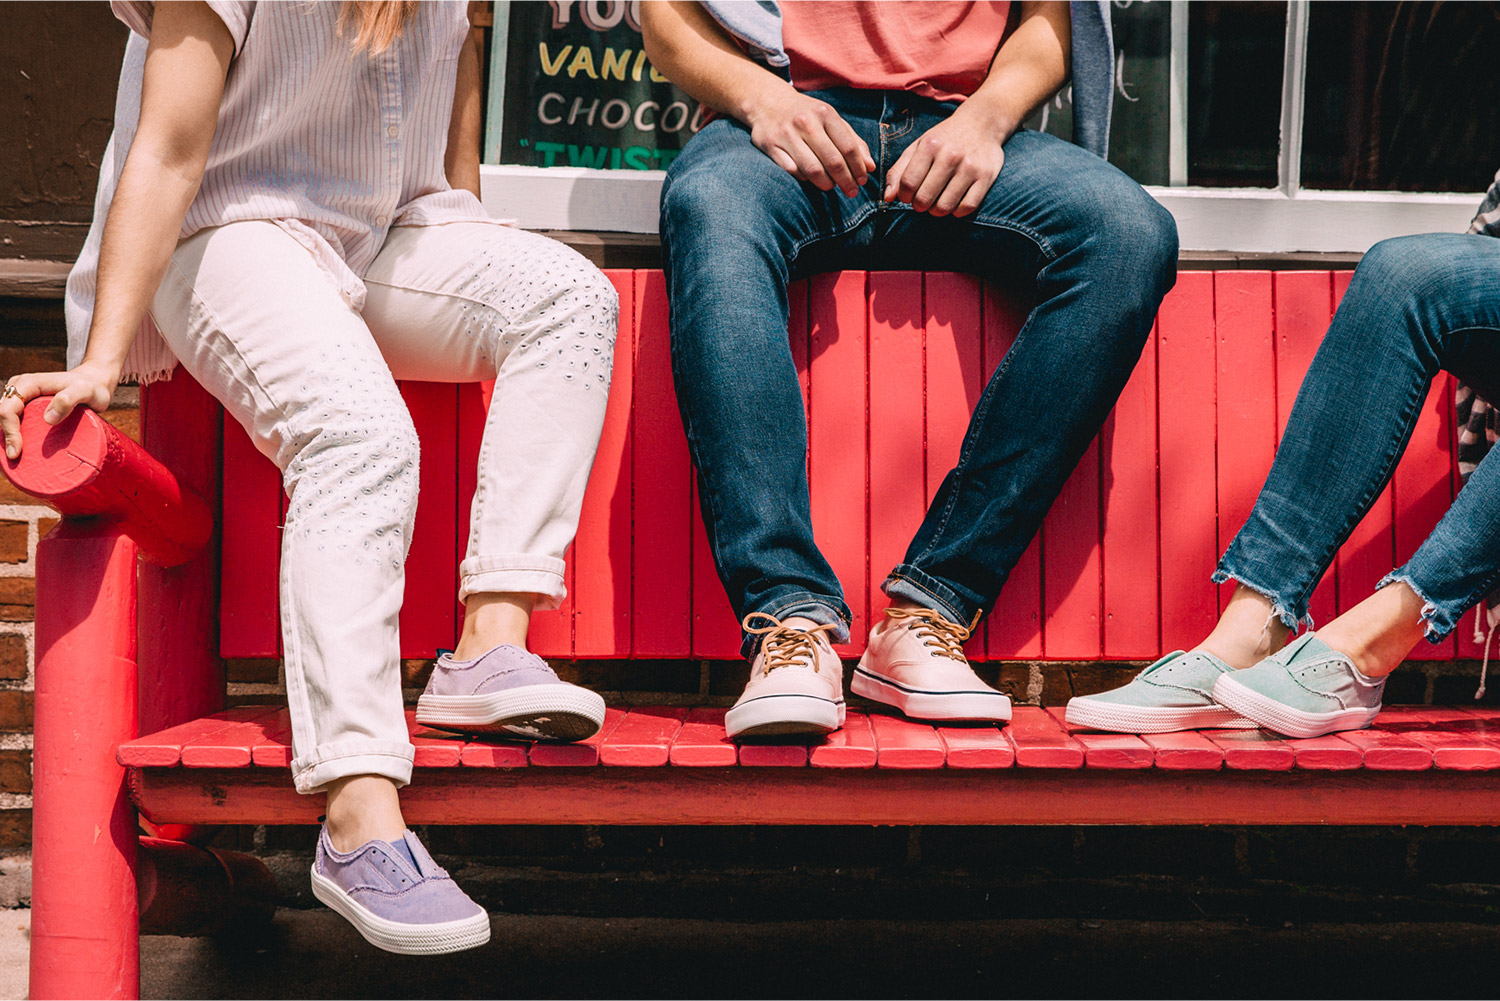 ec66a44b2 People sitting on the back of a bench with their feet on the seat, wearing